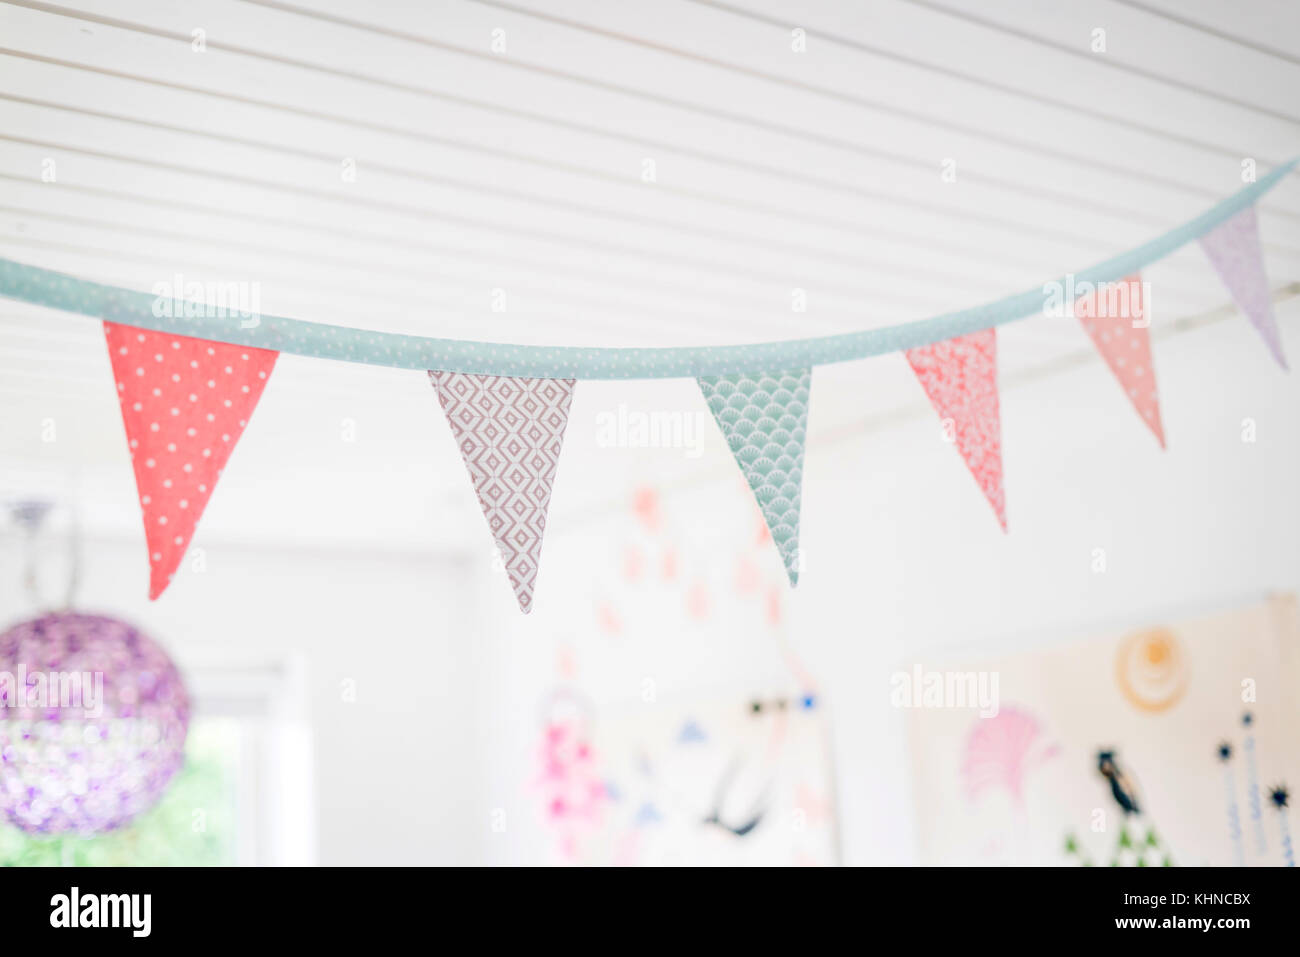 Colorful birthday flags in kids playroom in bright light - Stock Image